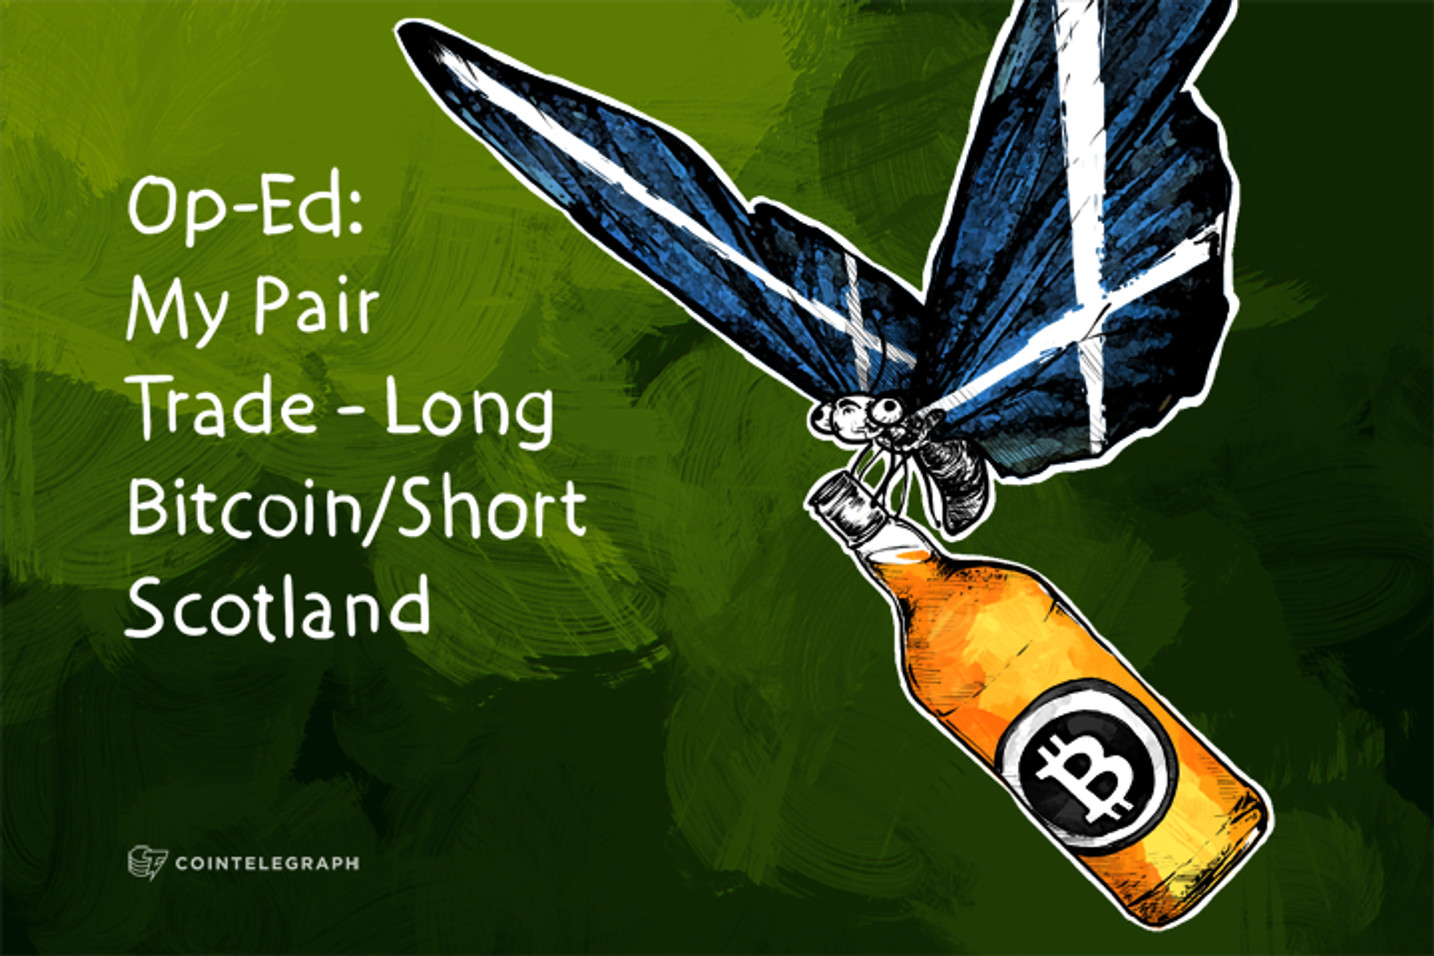 Op-Ed: My Pair Trade - Long Bitcoin/Short Scotland